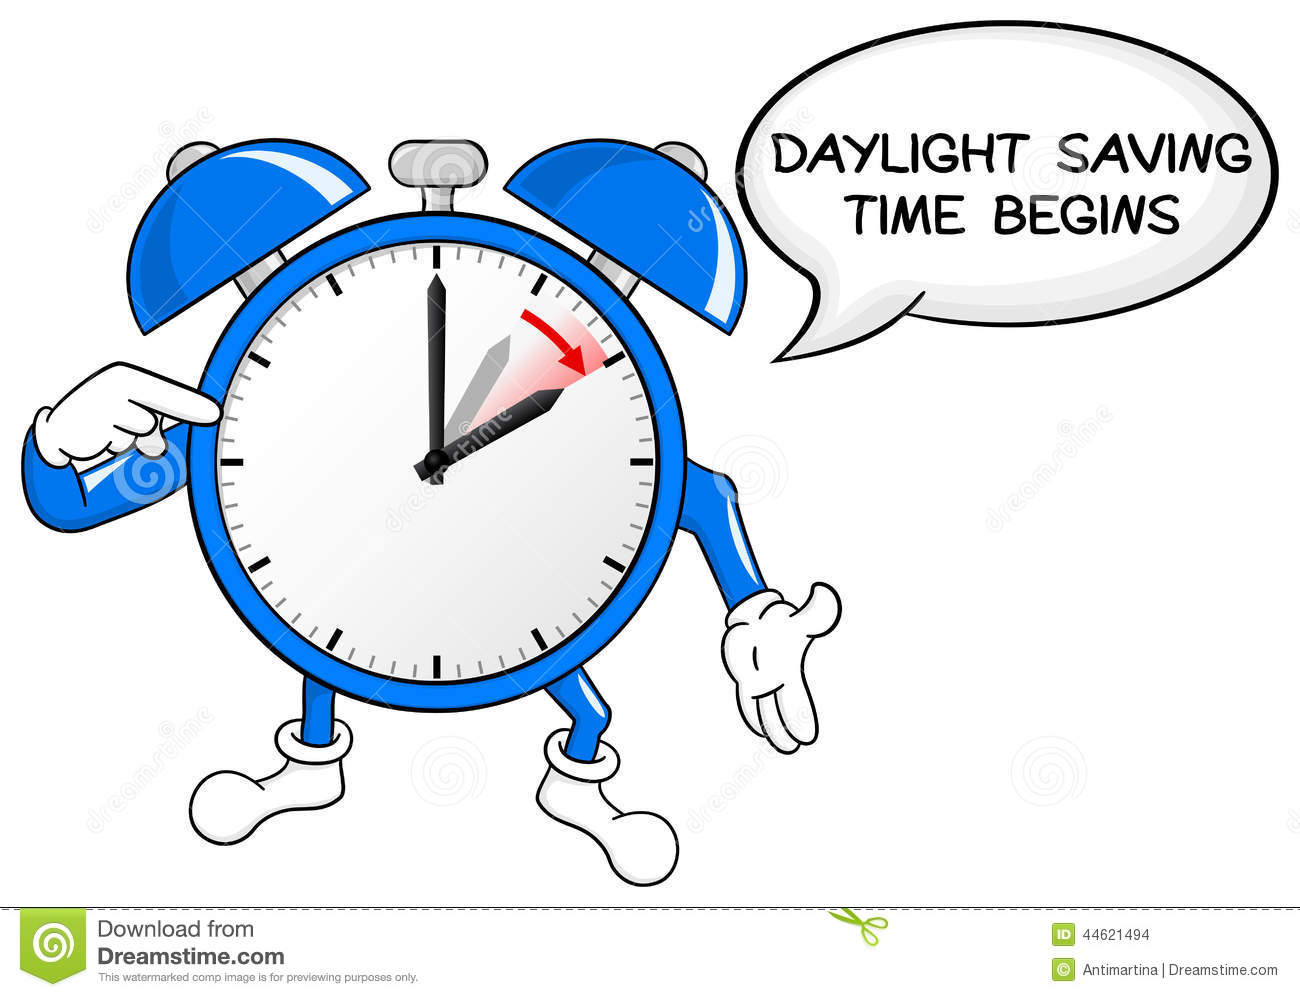 daylight savings time begins clipart clipart suggest daylight savings clip art spring forward daylight savings clip art religious free